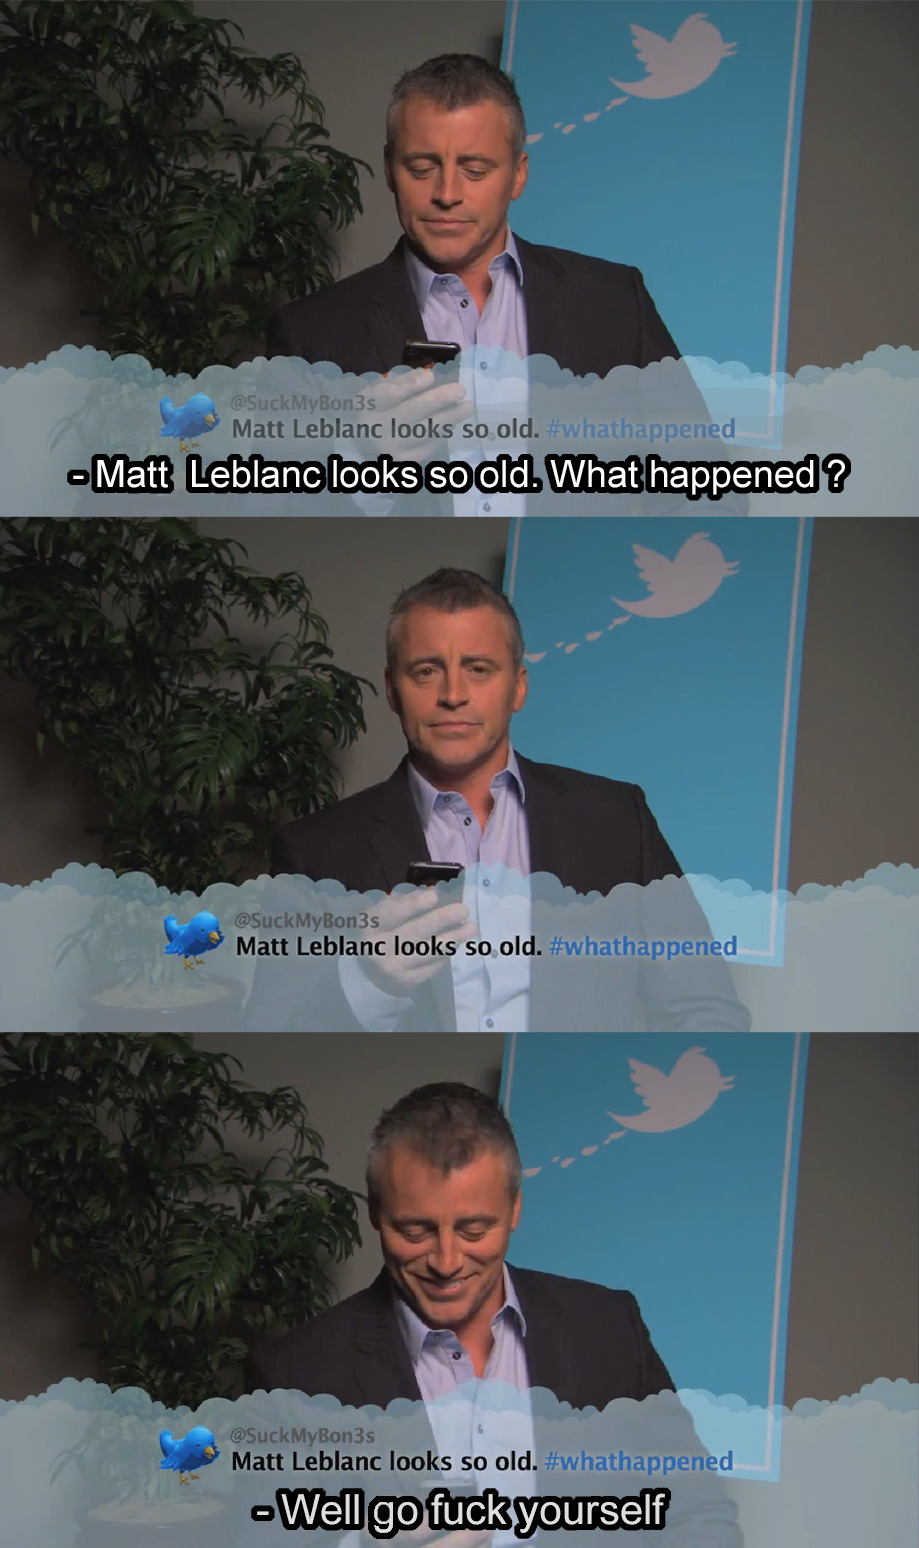 Epic Matt Leblanc is epic.